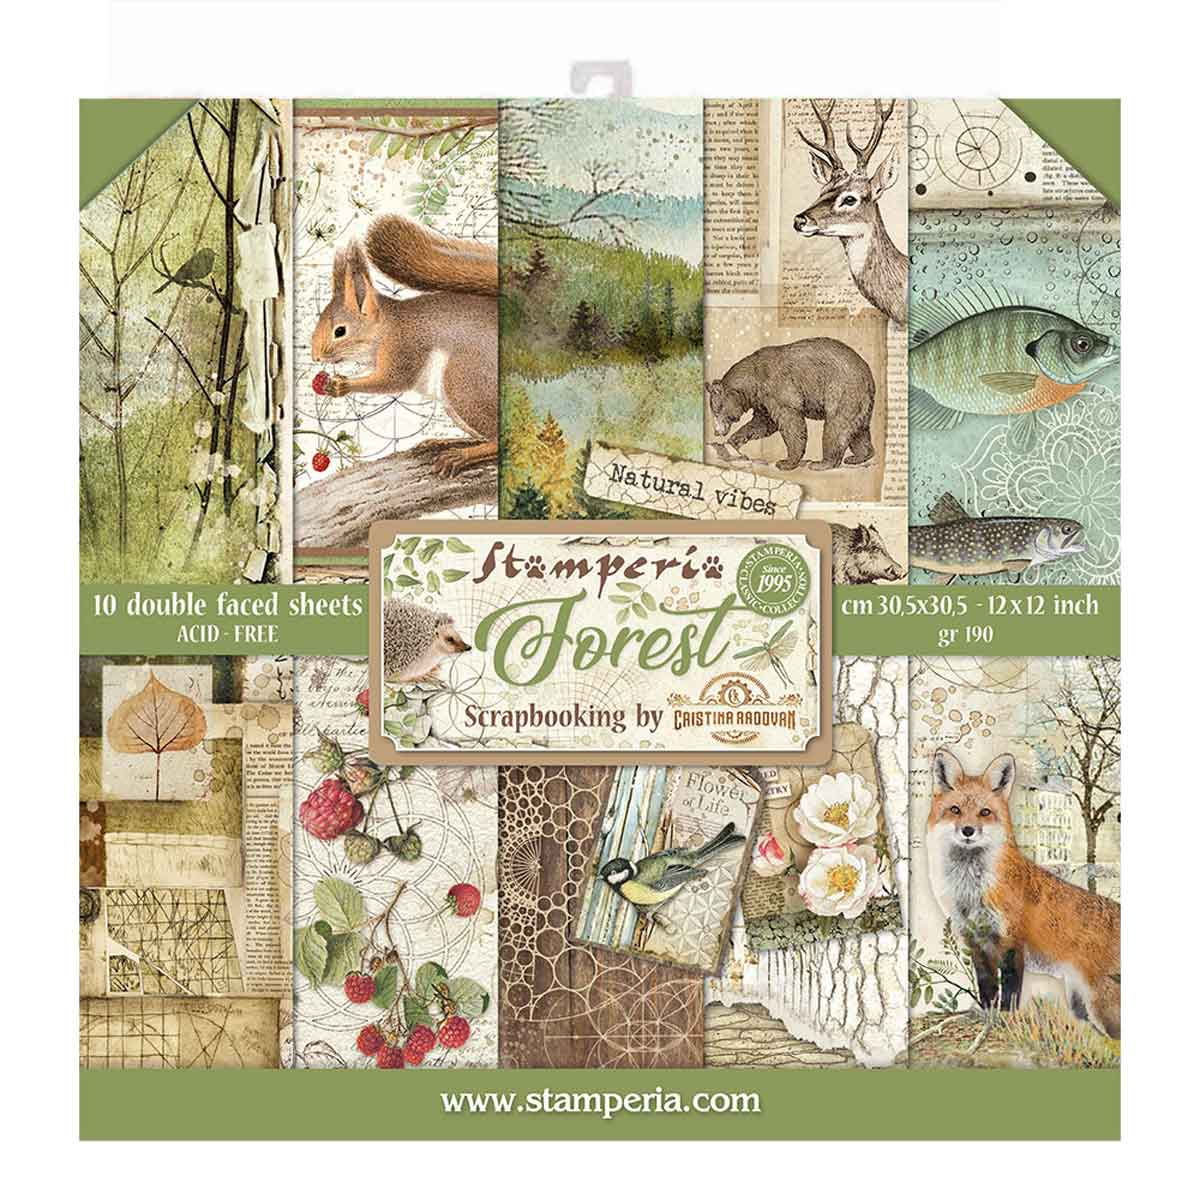 Linea Forest Scrapbooking – Blocco 30×30